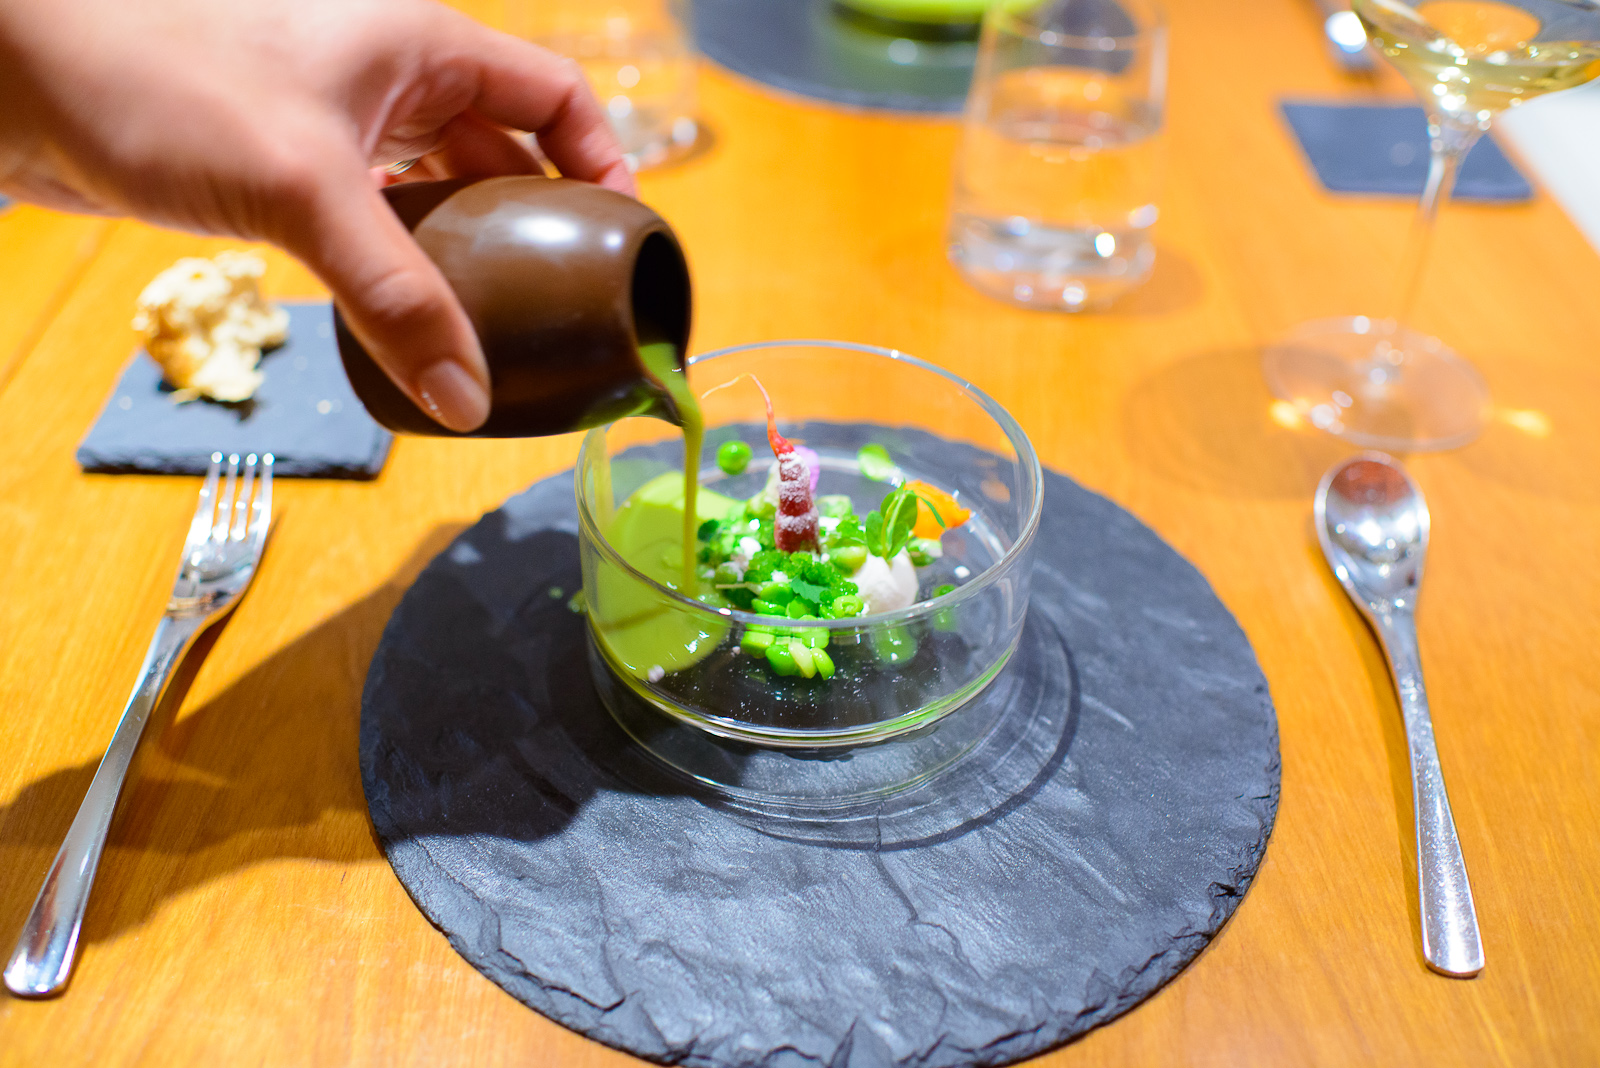 """1st Course: """"Spring's arrival"""" - Peas, coconut, and carrots with"""